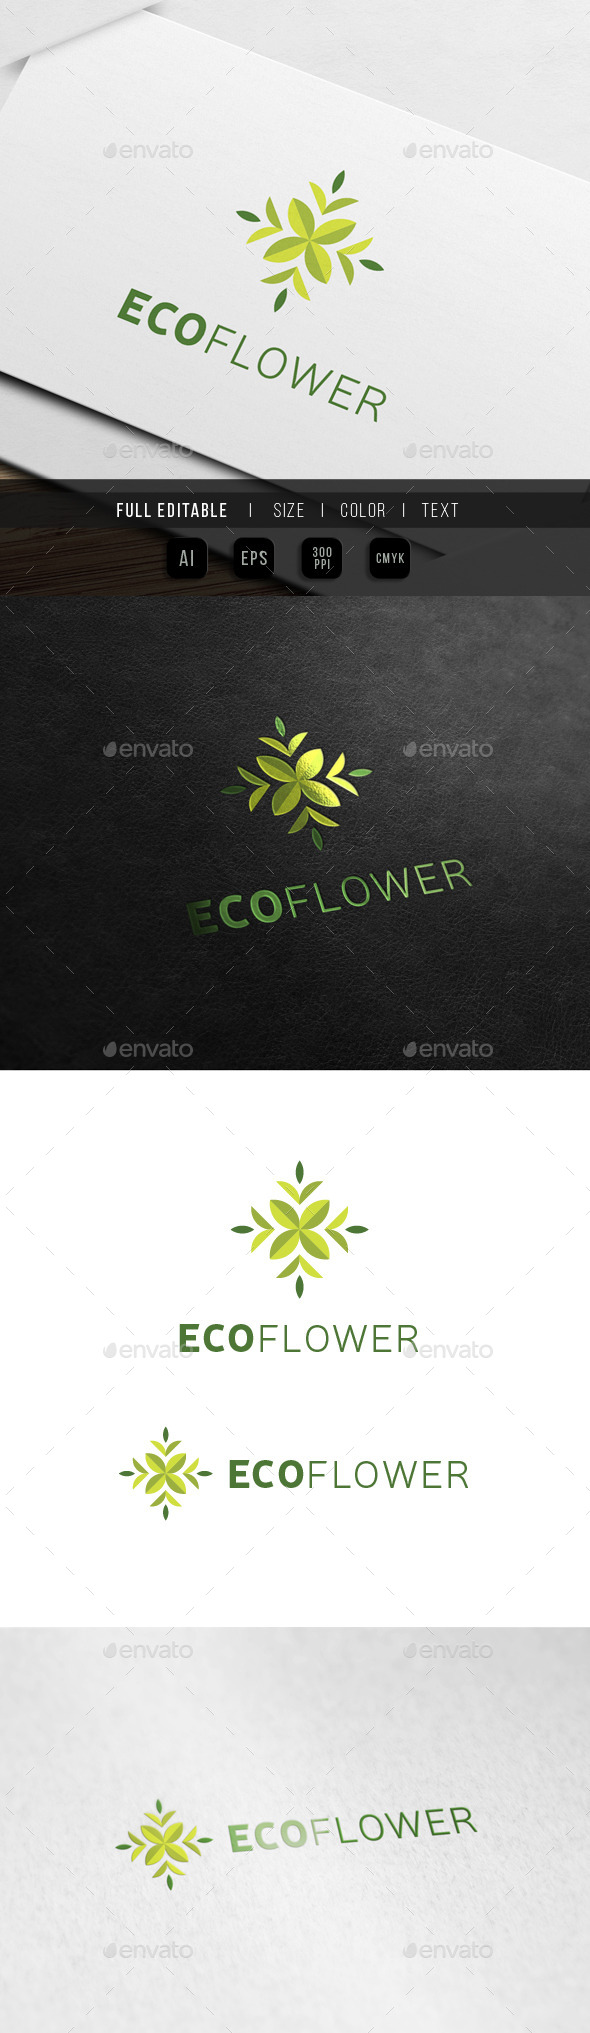 GraphicRiver Eco Flower Floral Art 10326495